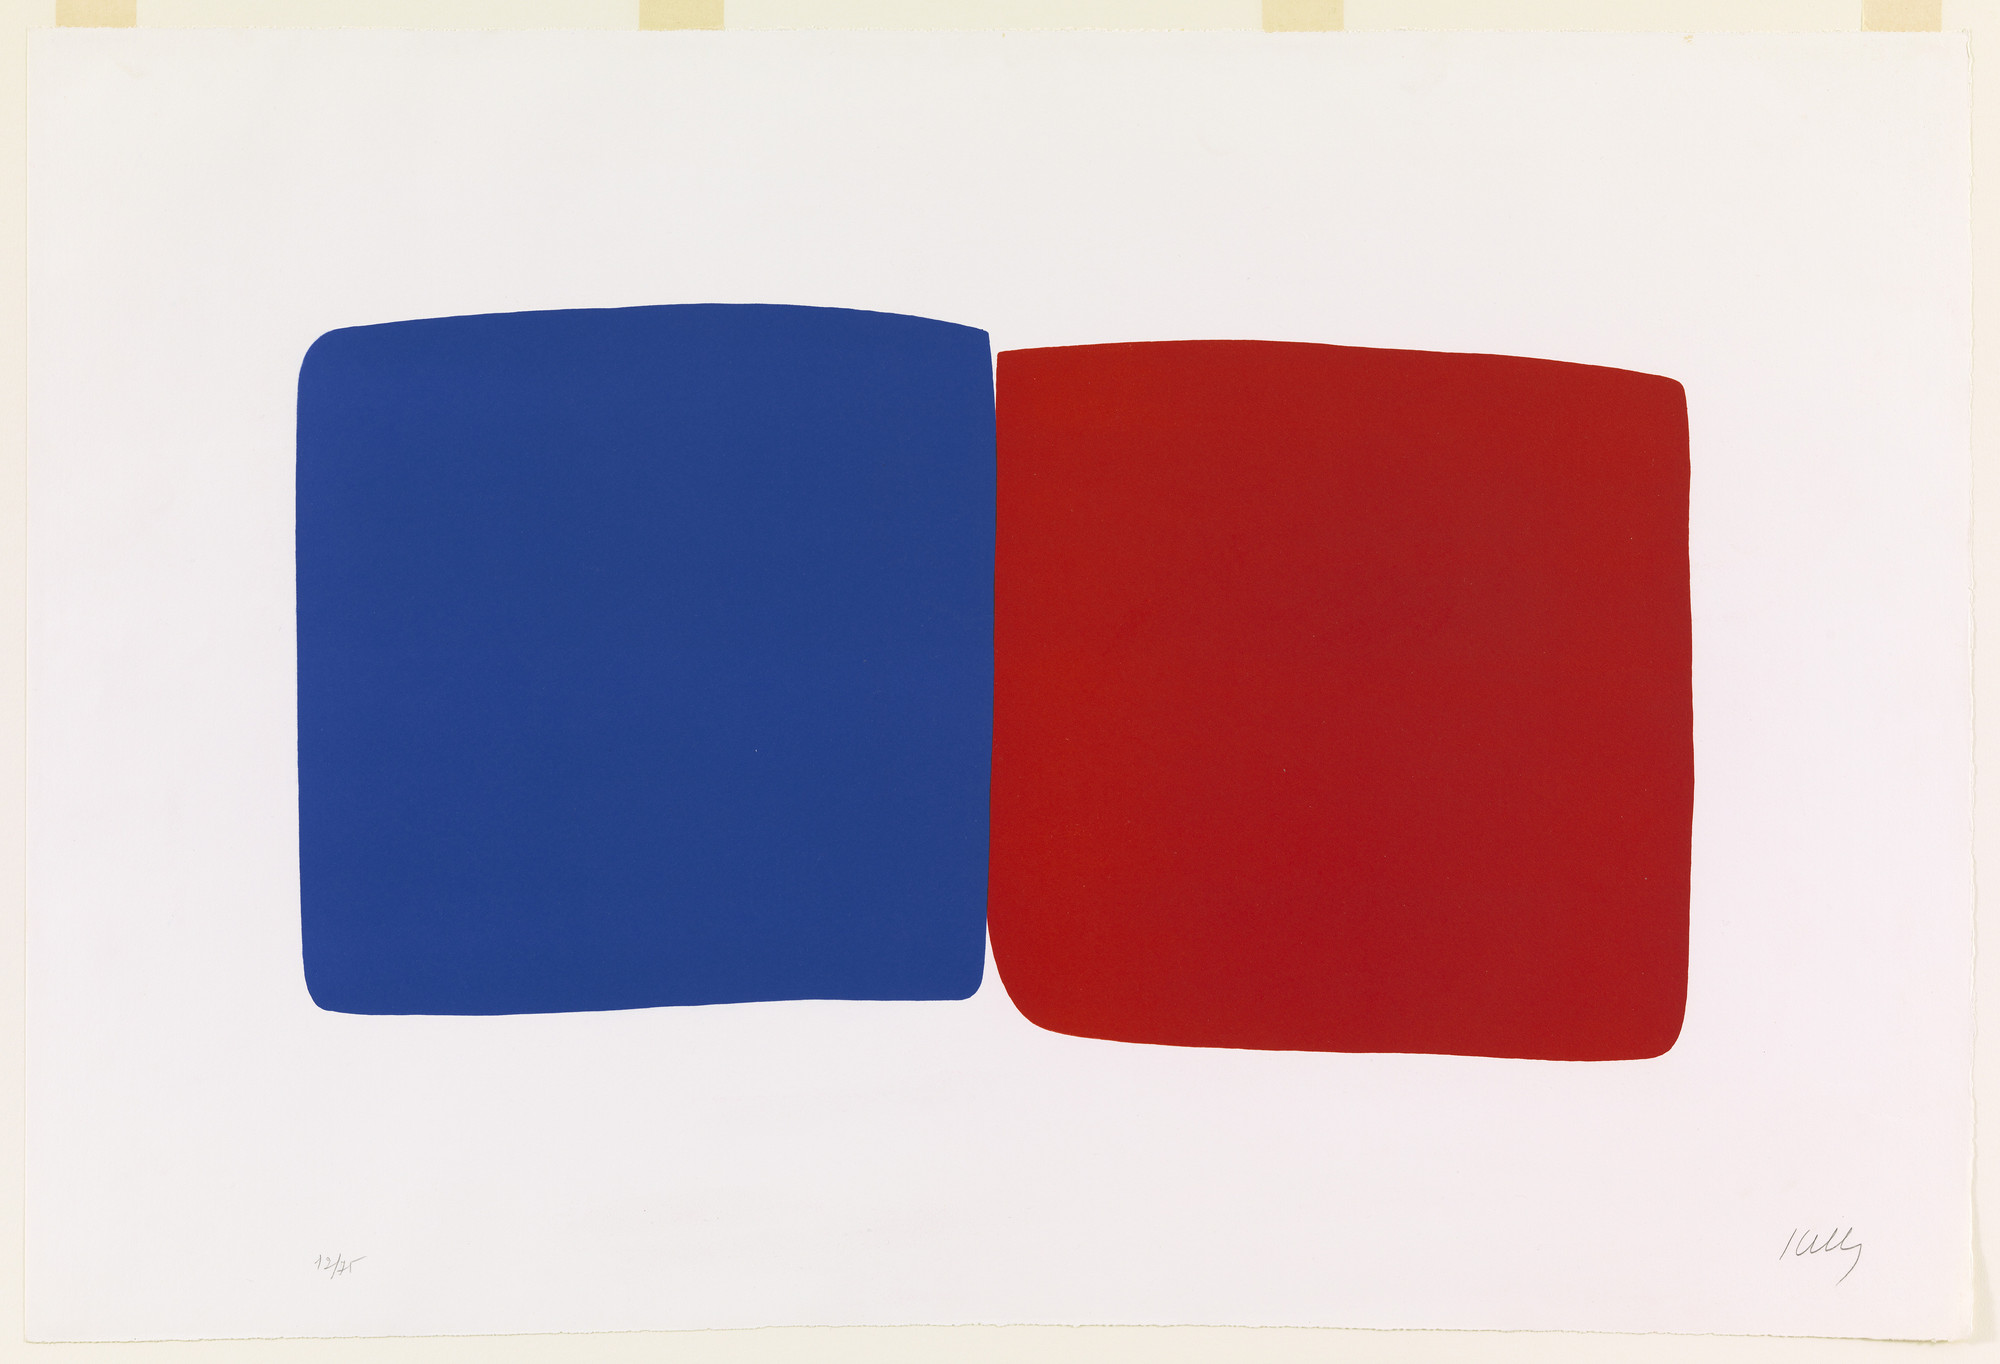 Ellsworth Kelly. Dark Blue and Red (Bleu foncé et rouge) from Suite of Twenty-Seven Color Lithographs. 1964–65